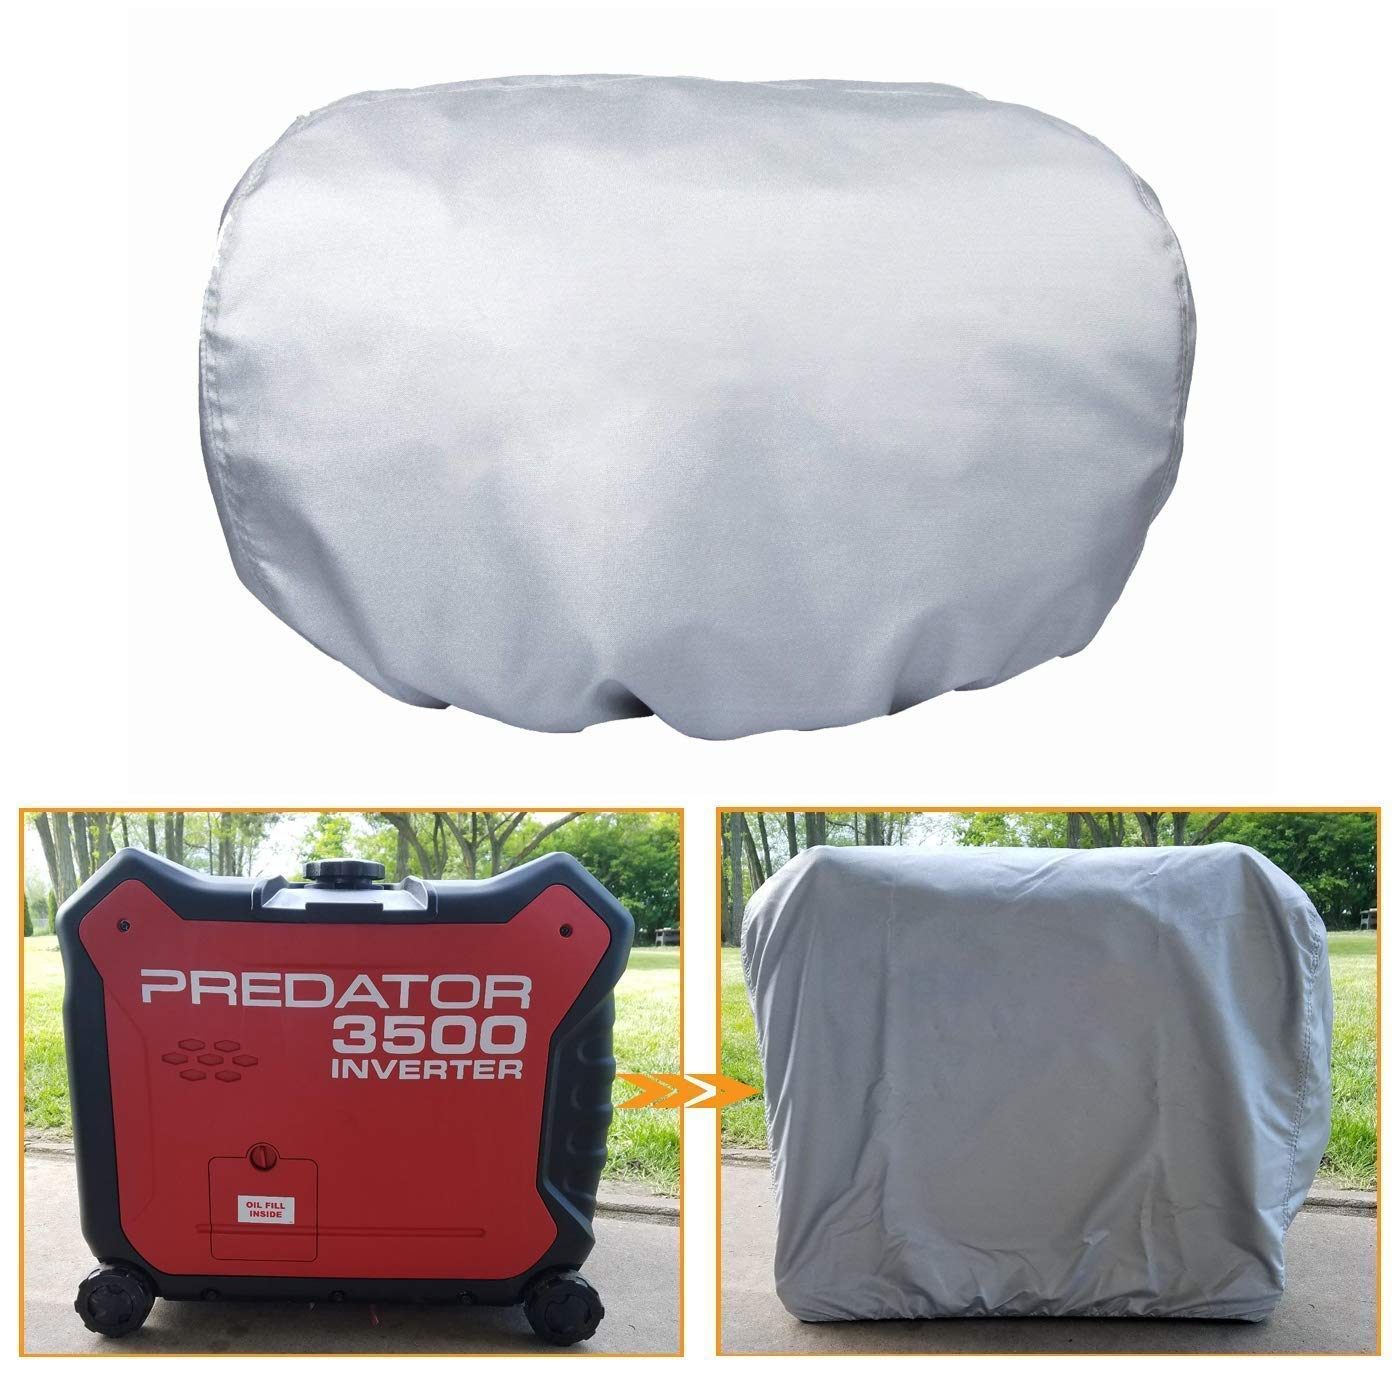 Matler Generator Cover for Honda EU3000is & Predator 3500, All Season Outdoor Storage Cover,Protect Against Dust, Debris, Rain Weather by Matler